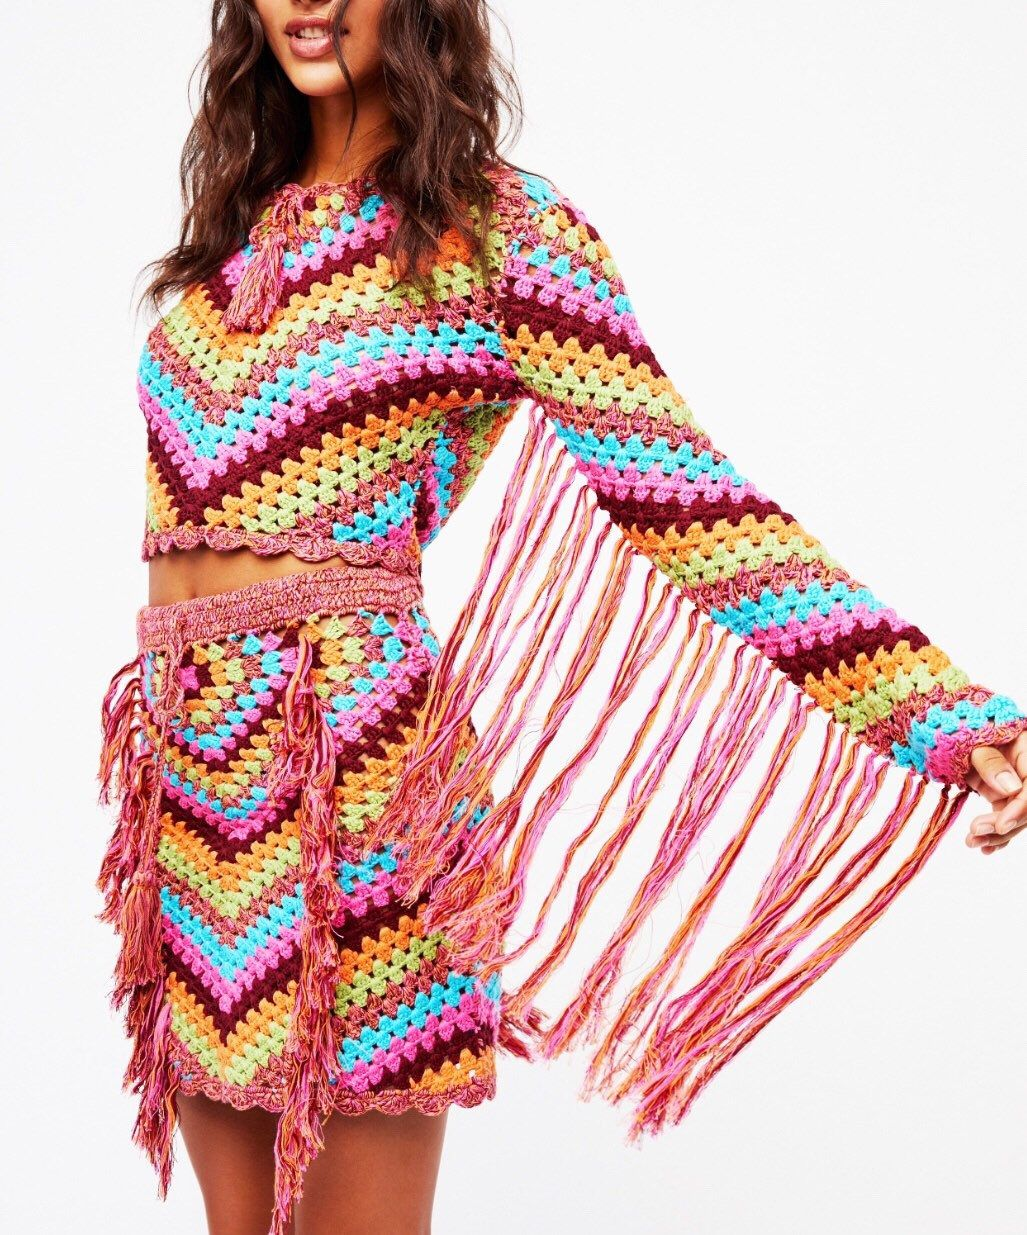 Crochet Multicolor Top and Skirt , Diagonal Striped Tassels, Boho Hippie Gypsy , Festival Clothing .